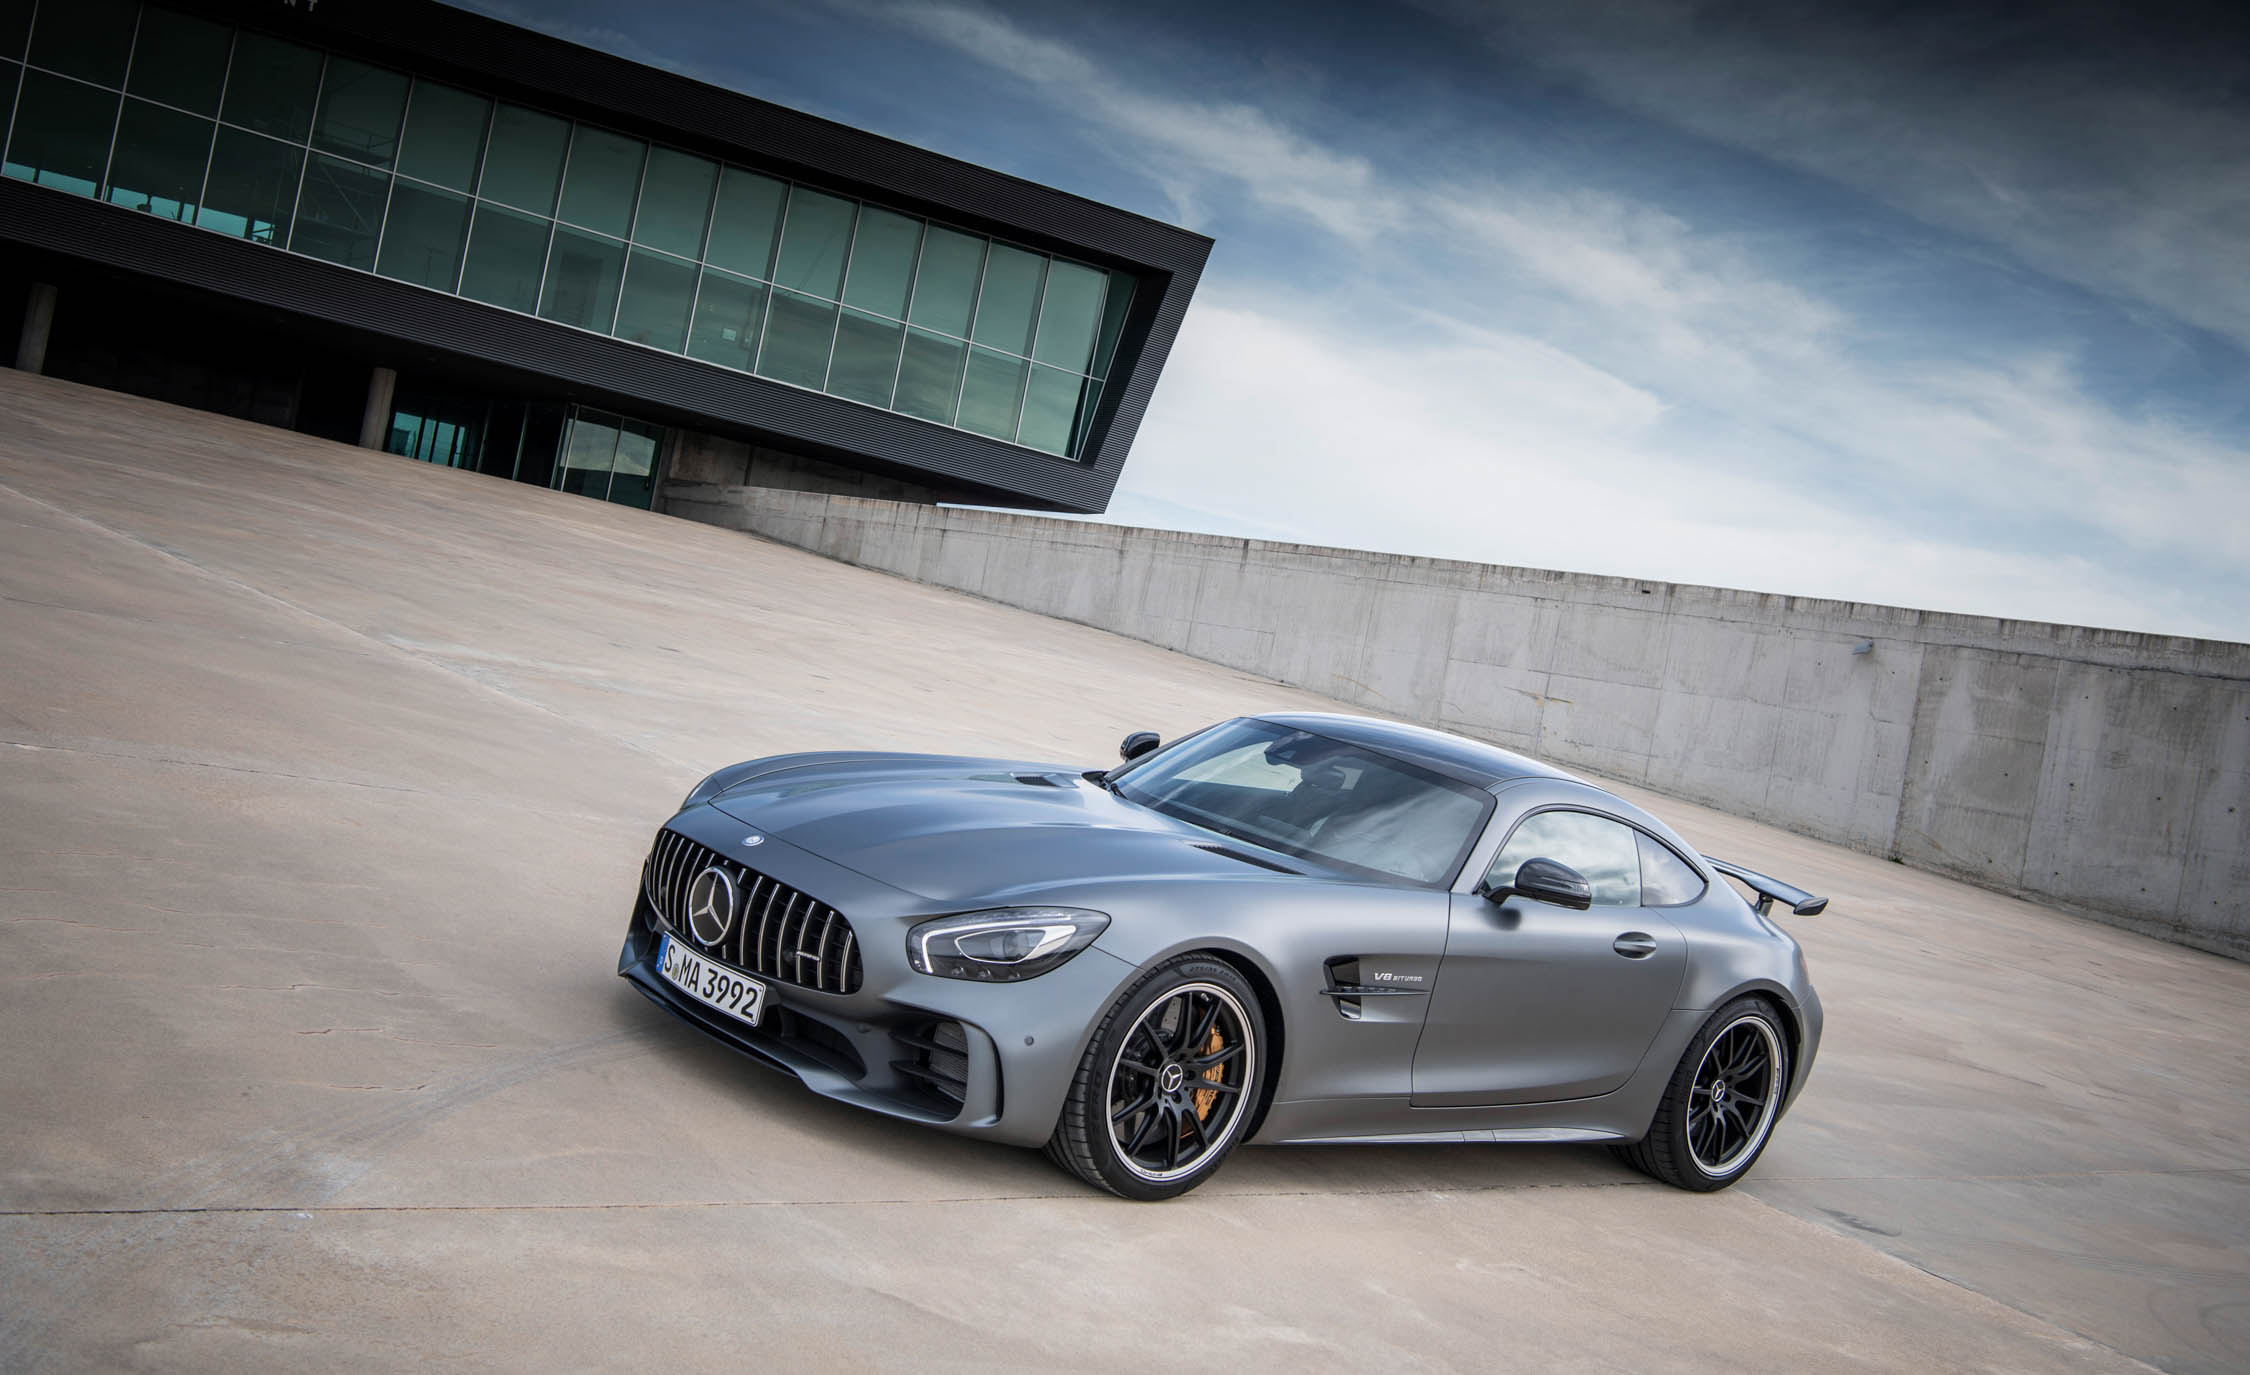 2018 Mercedes AMG GT R Exterior Grey Metallic Front And Side (Photo 9 of 36)